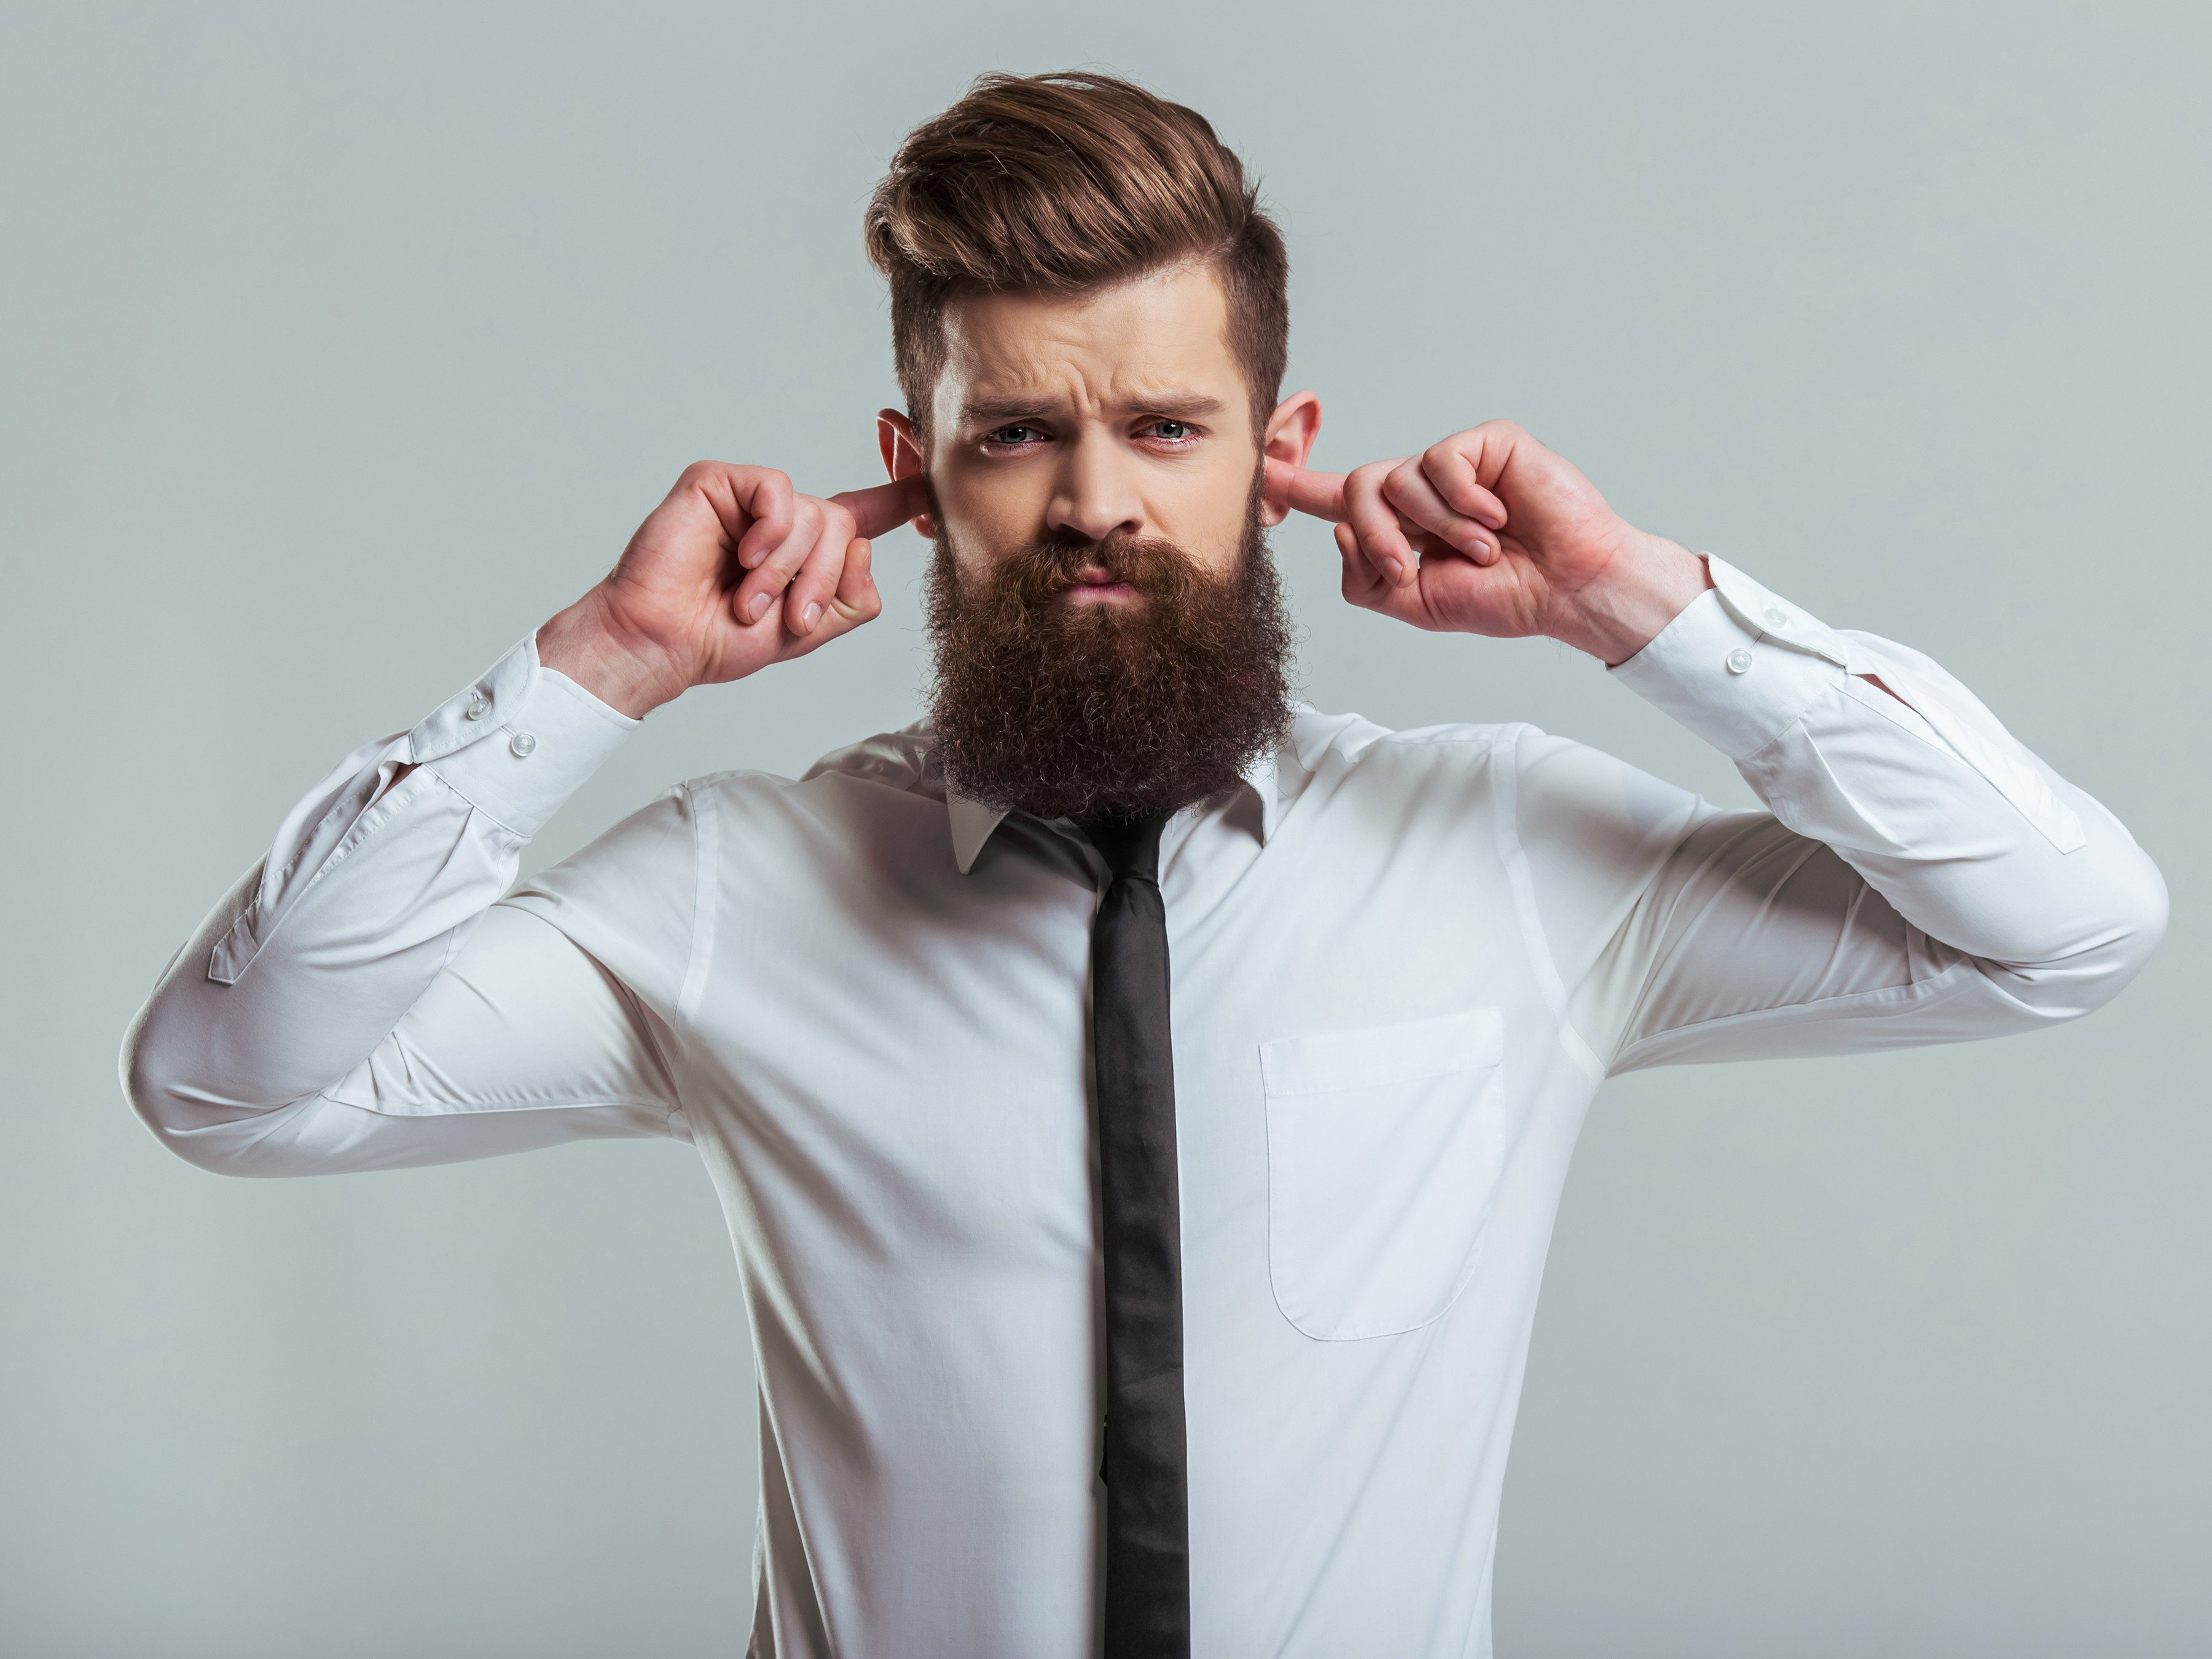 How to get rid of hiccups - 5 Plug Your Ears